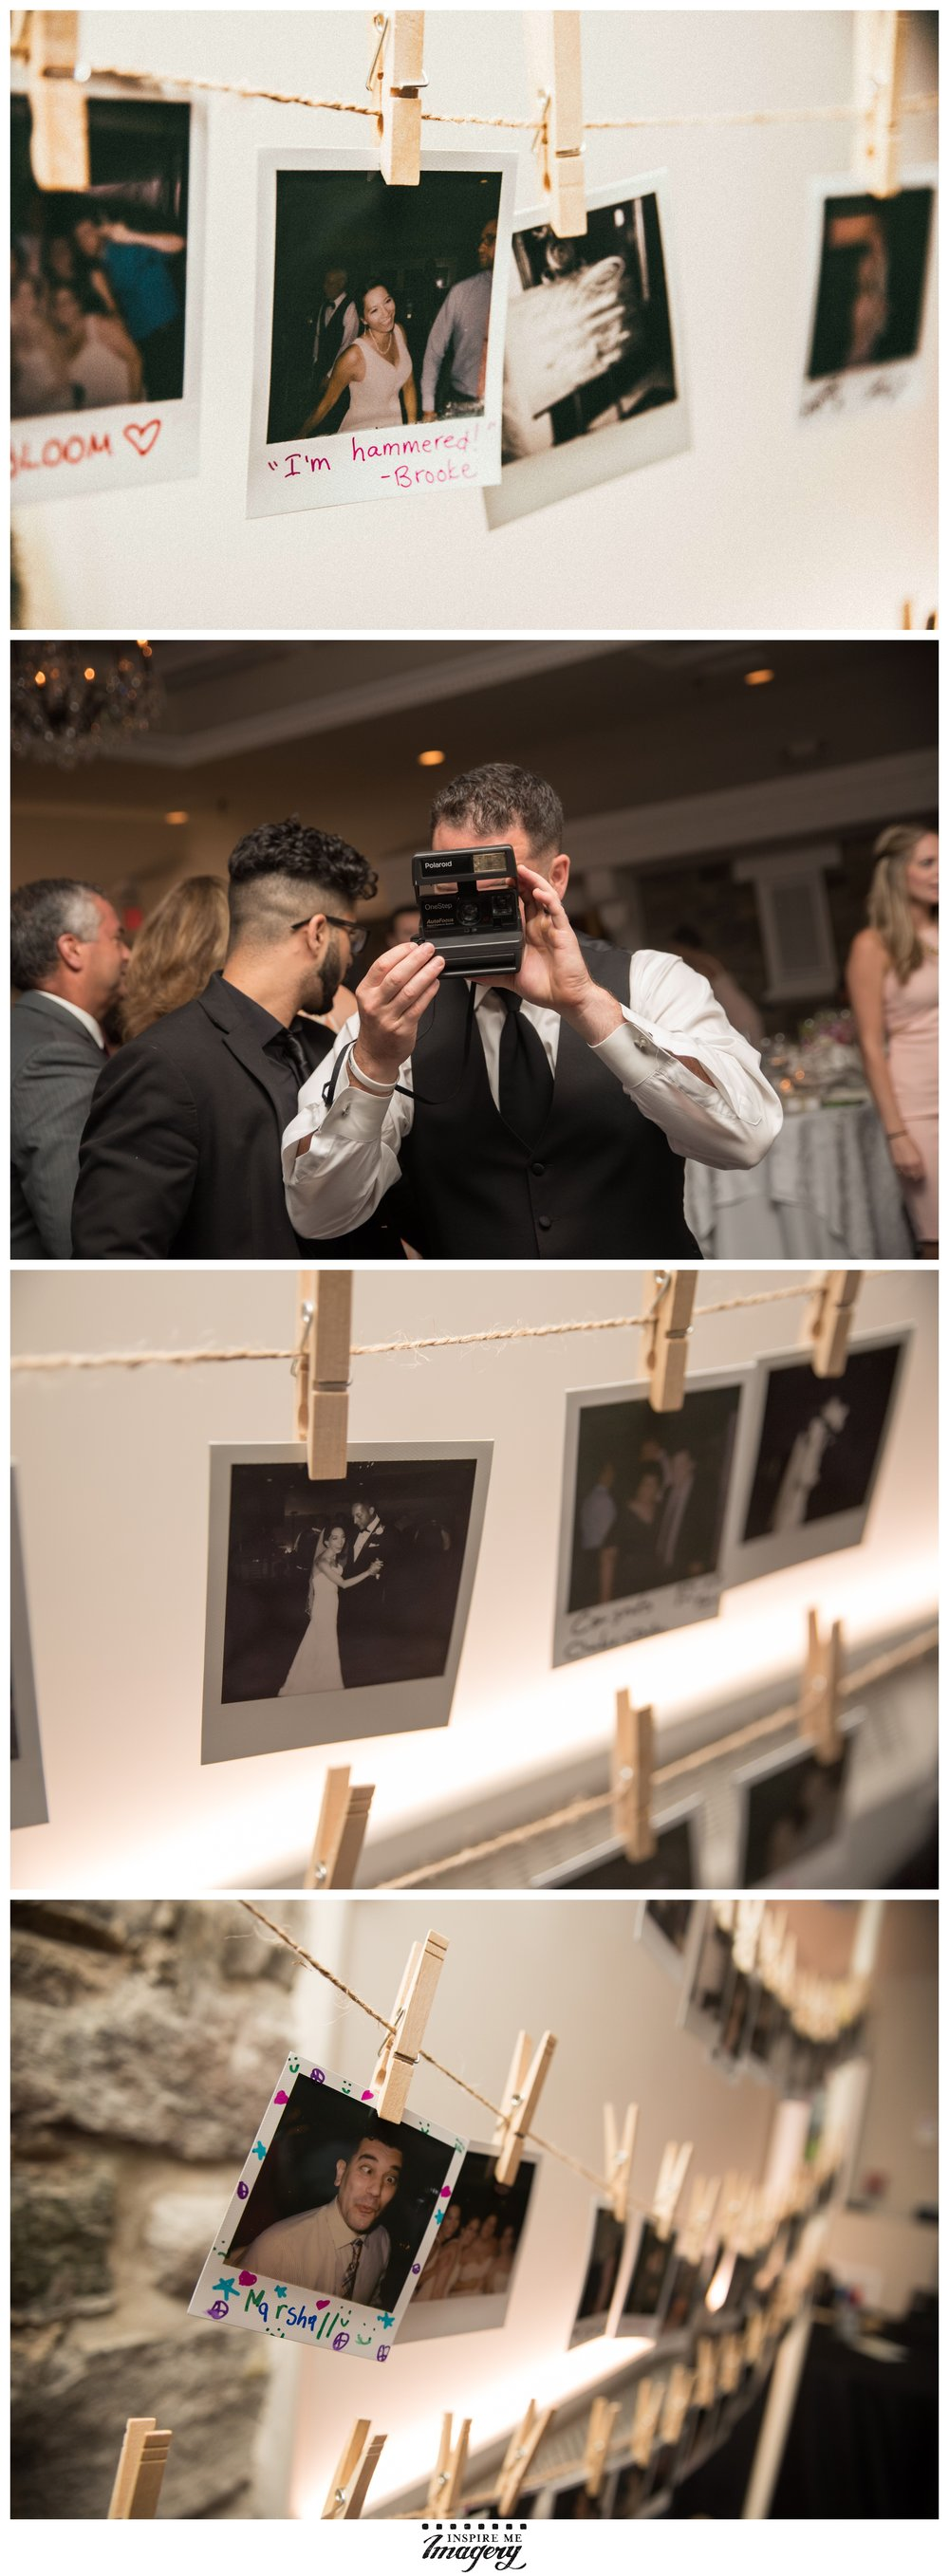 The bride and groom opted for our popular Polaroid Pin-Up service! We love the messages guests leave for the bride and groom on their polaroids.